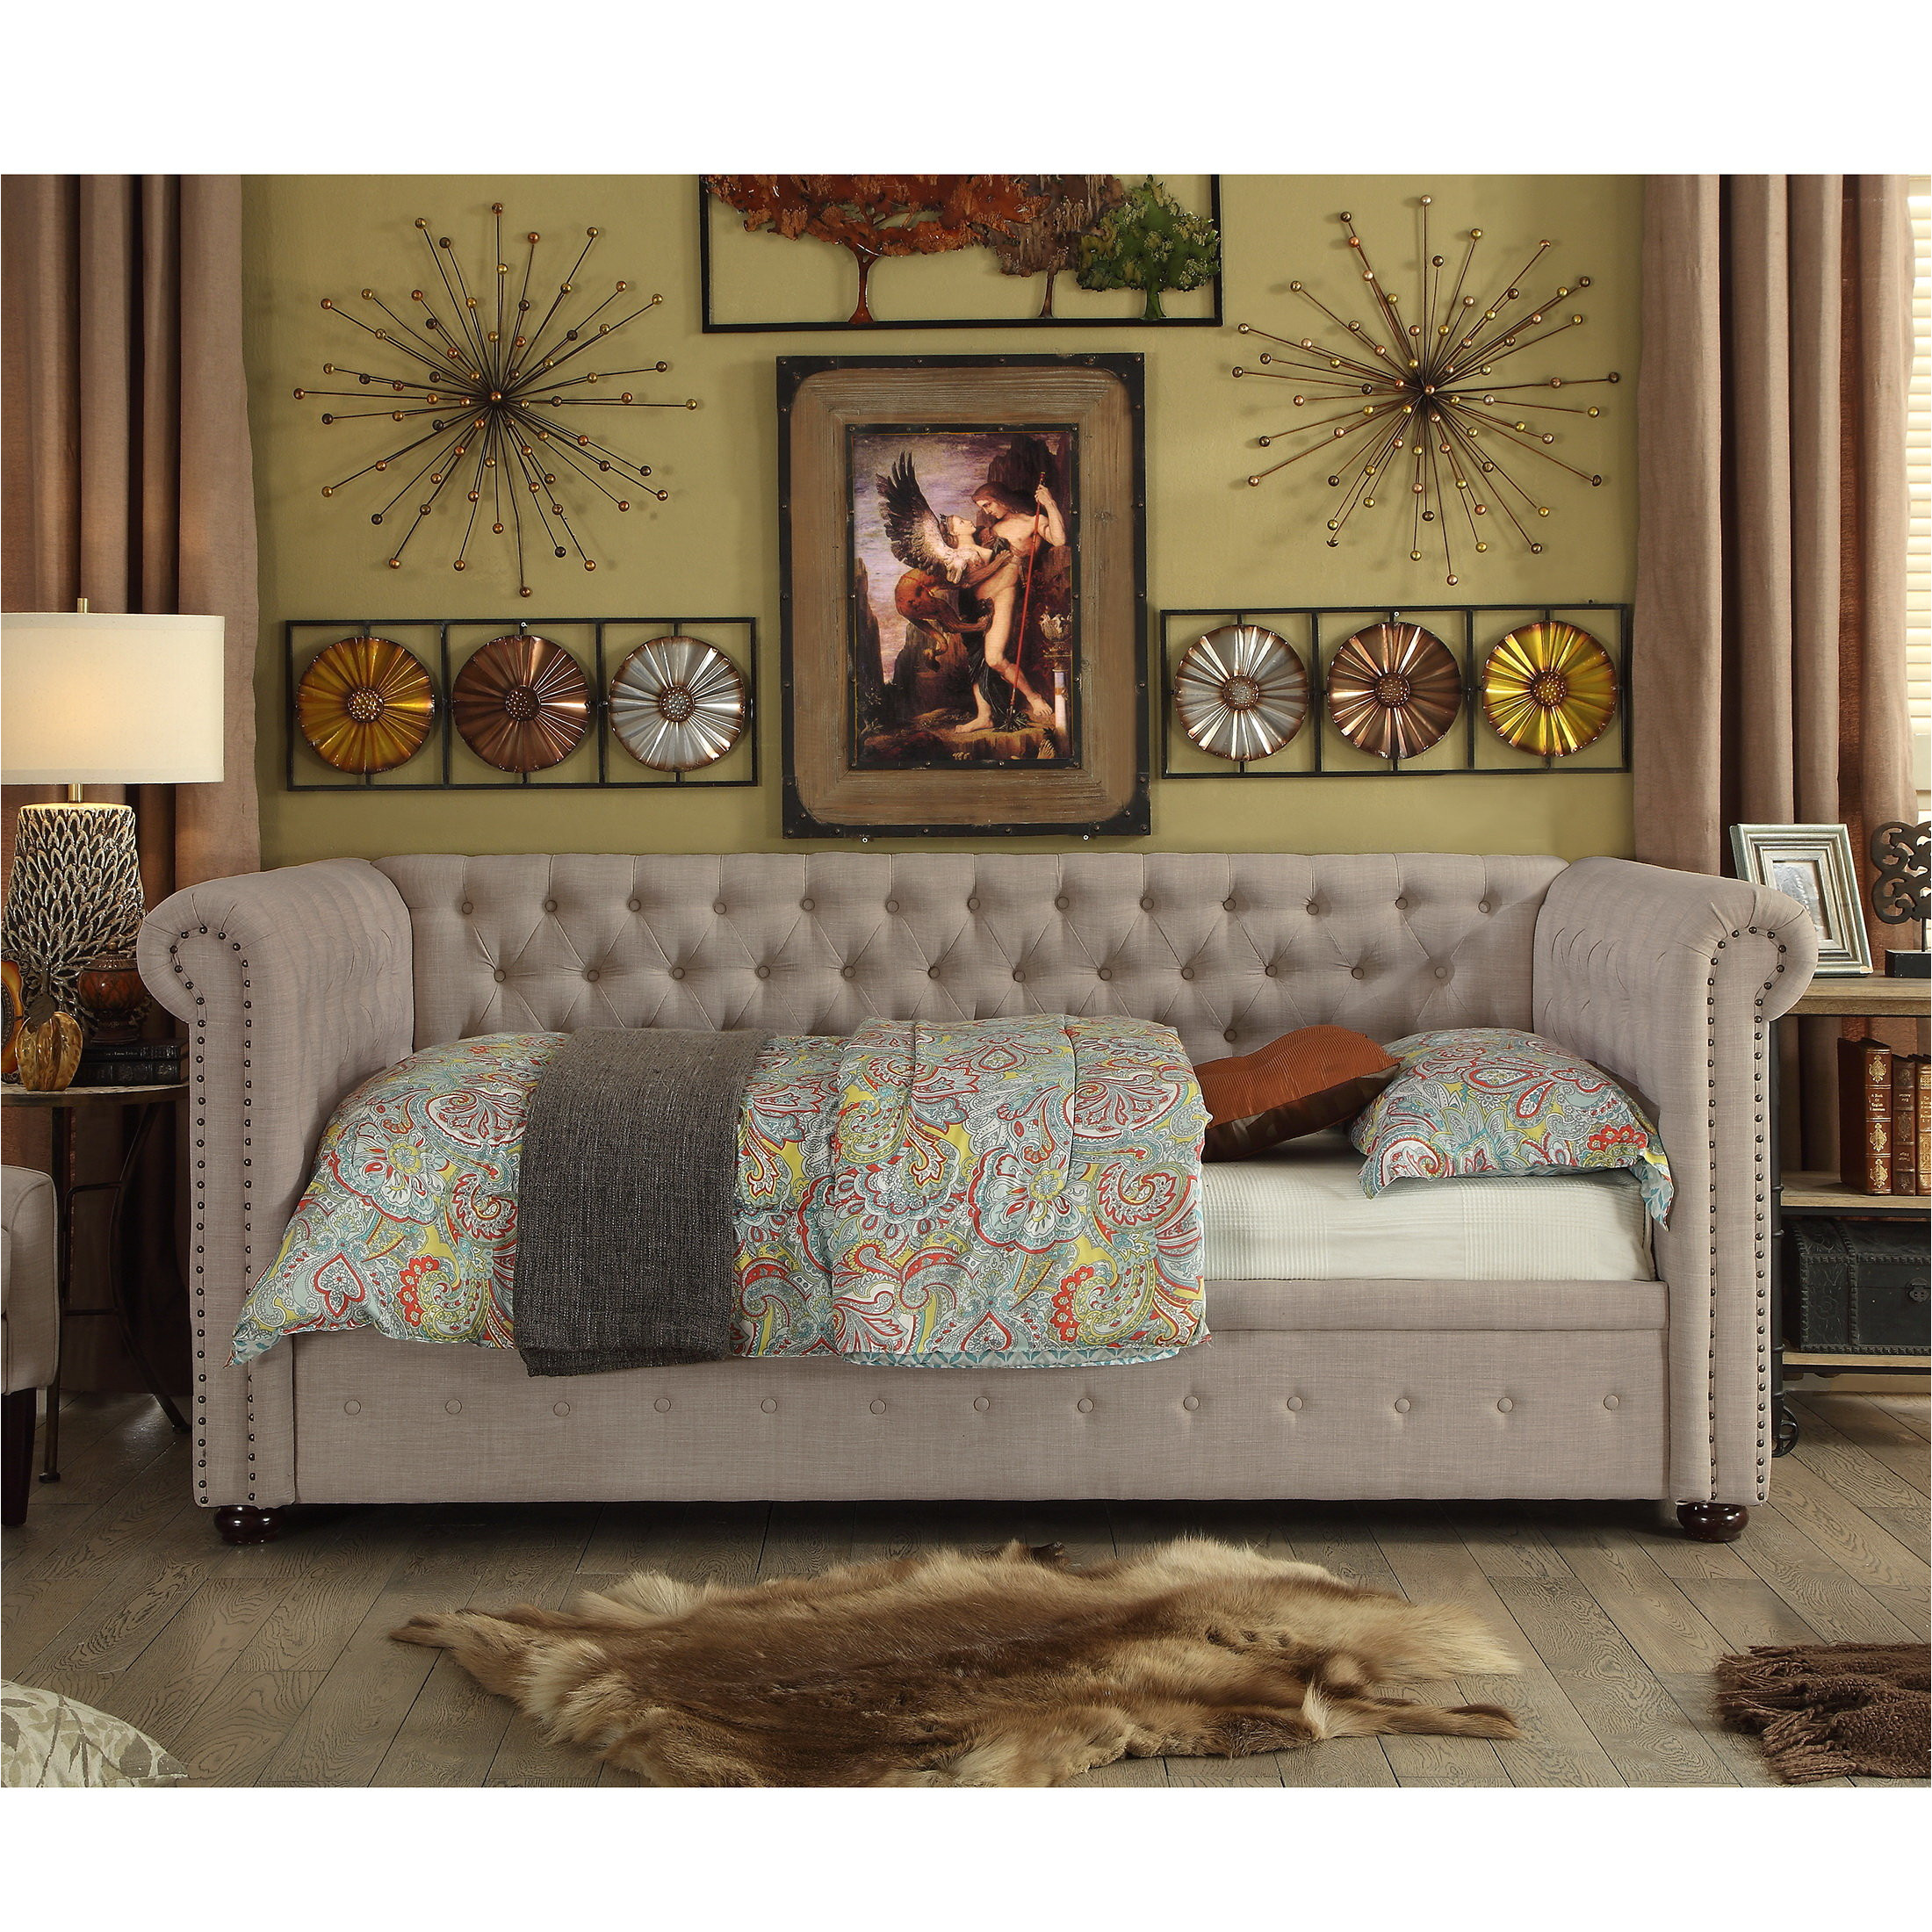 dolson twin size tufted daybed jpg